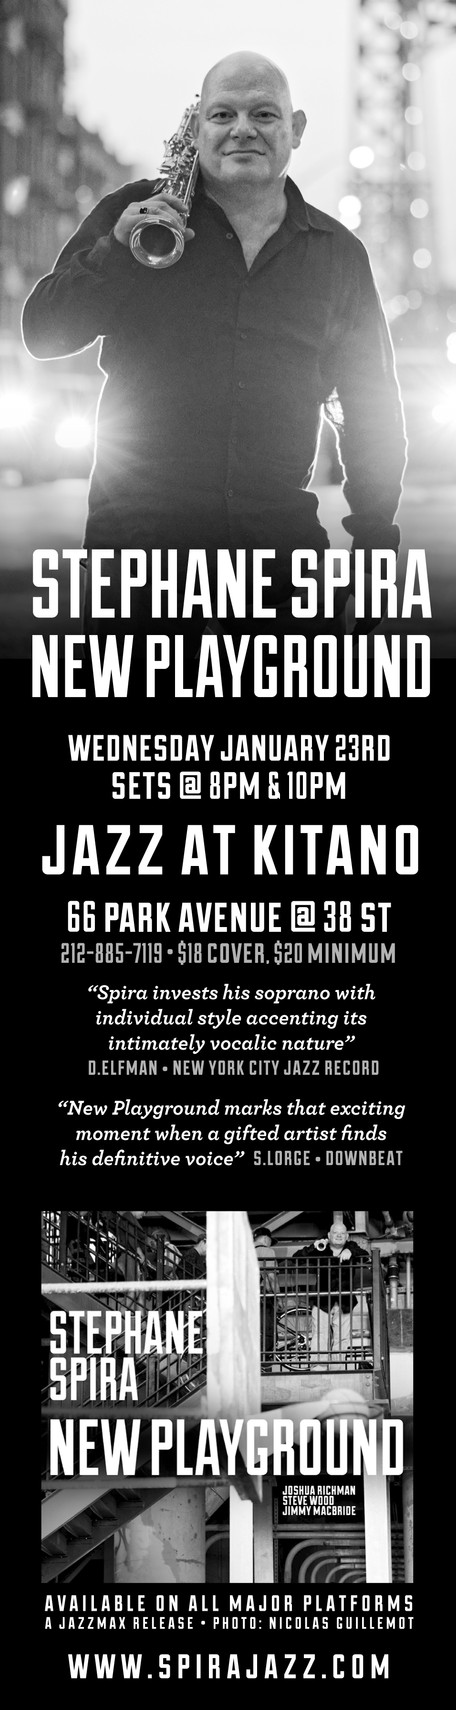 "STEPHANE SPIRA ""NEW PLAYGROUND"" QUARTET @ JAZZ AT KITANO - 1/23/2019 @ 8PM"